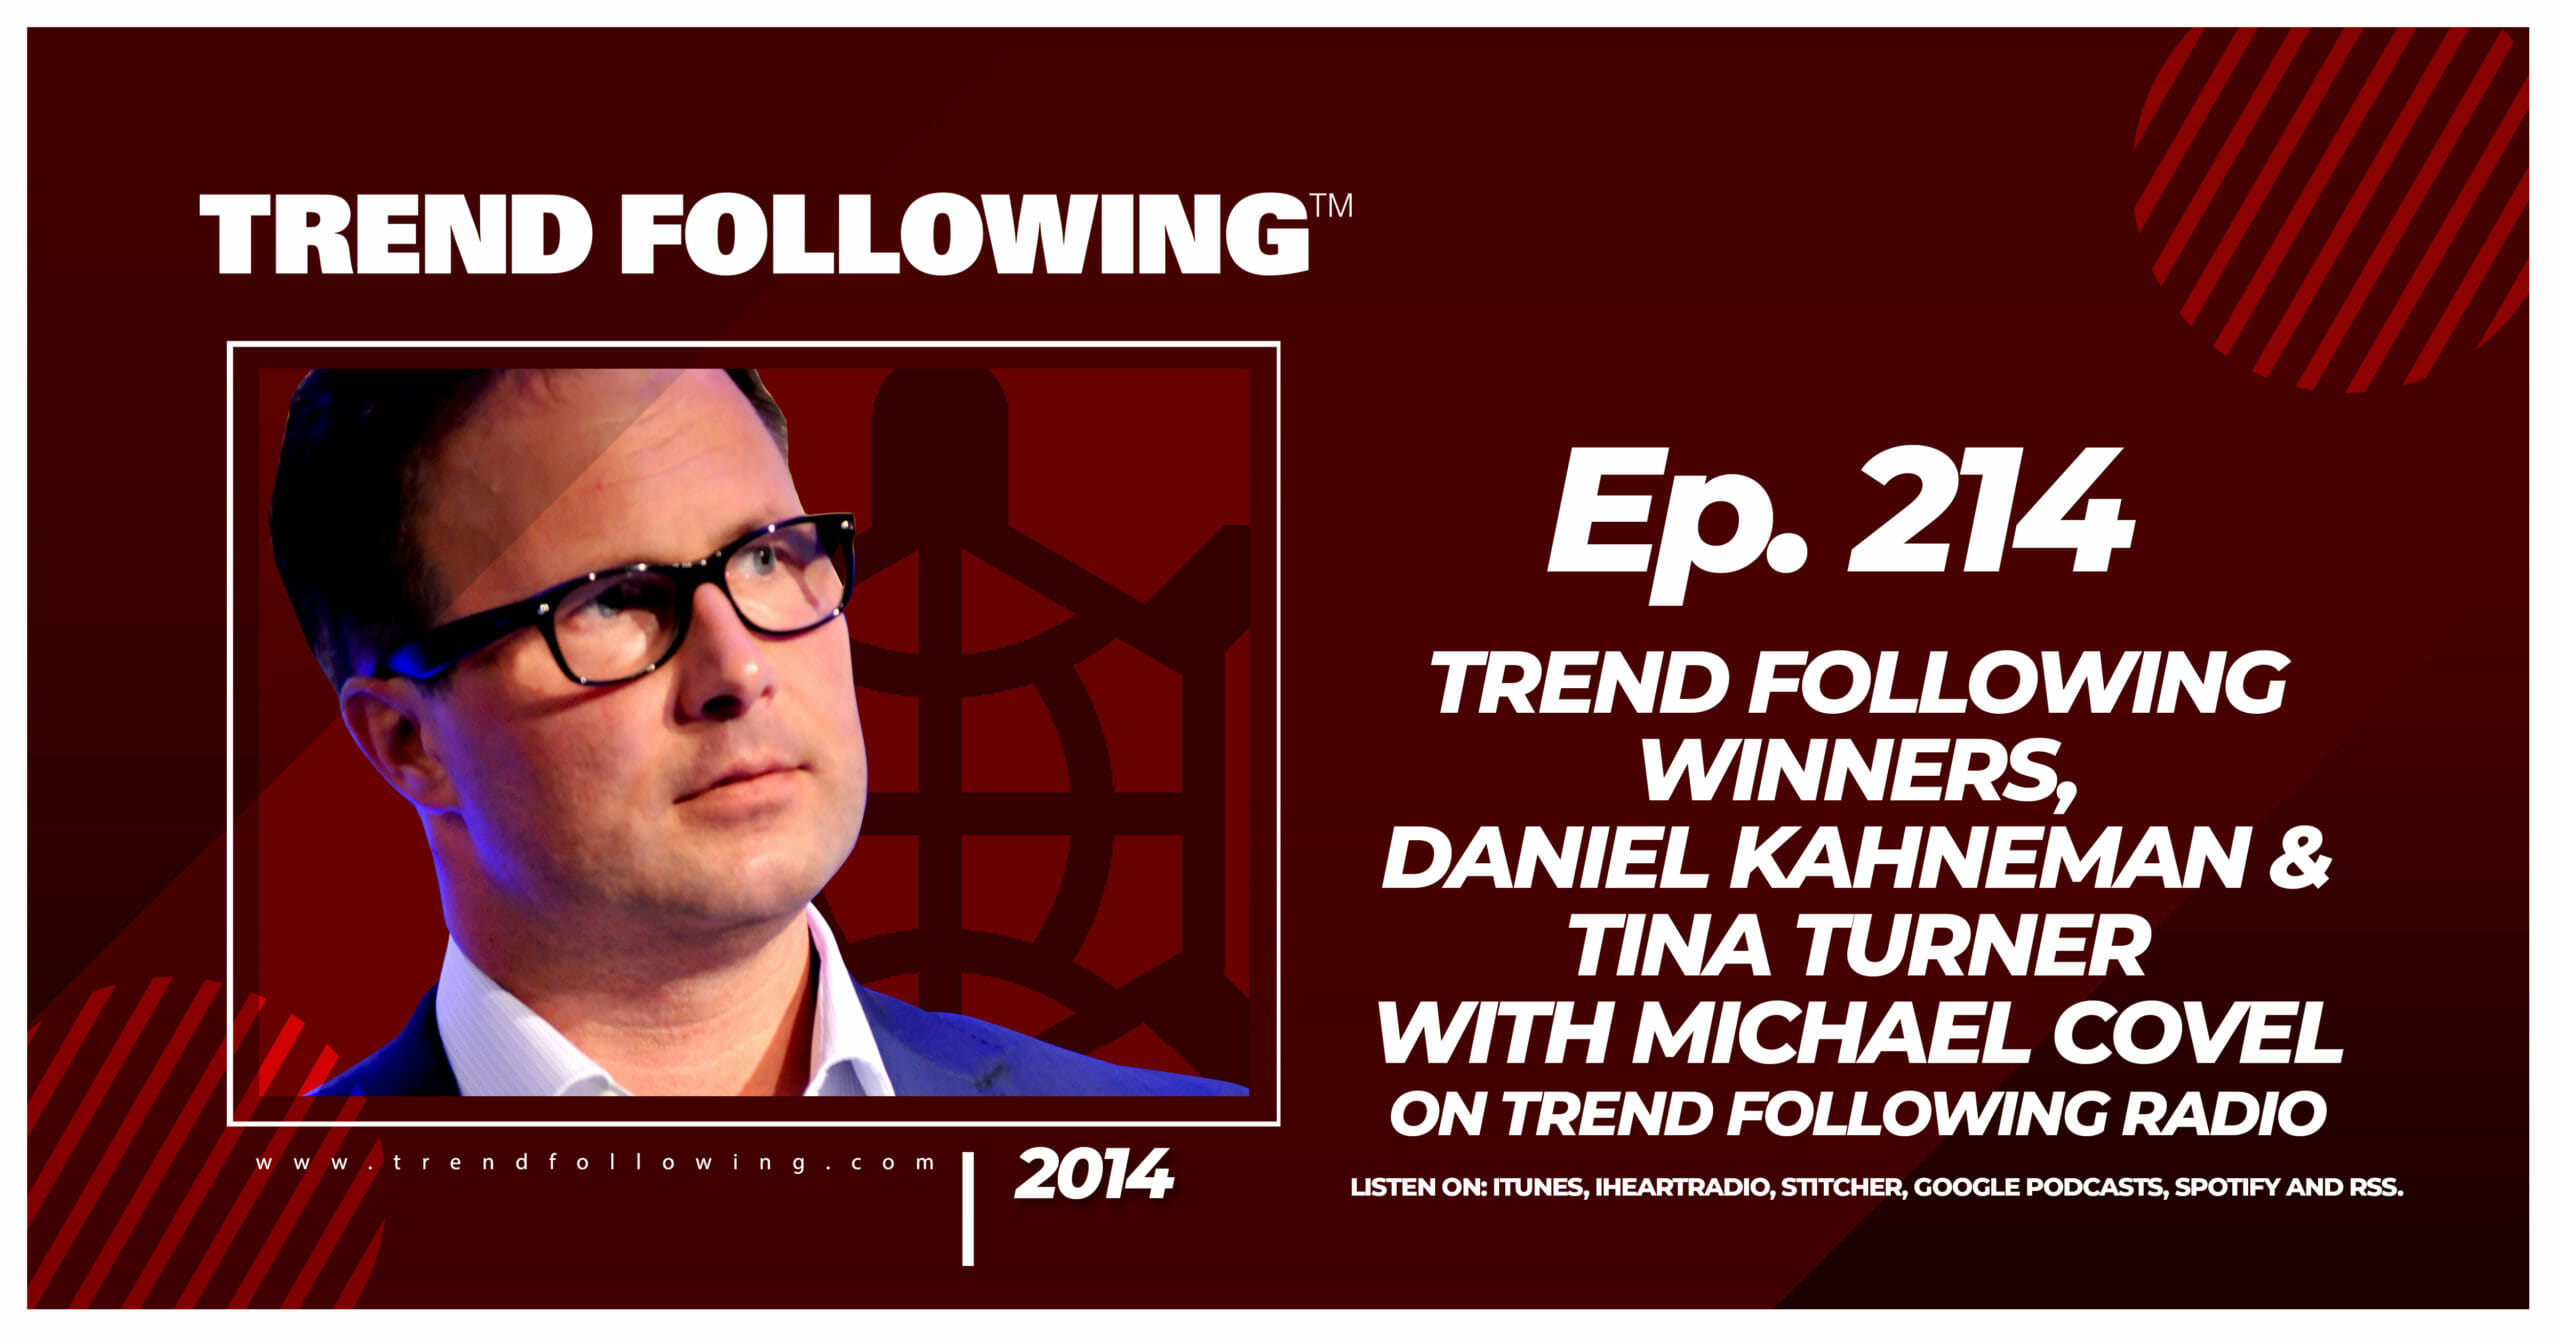 Trend Following Winners, Daniel Kahneman & Tina Turner with Michael Covel on Trend Following Radio